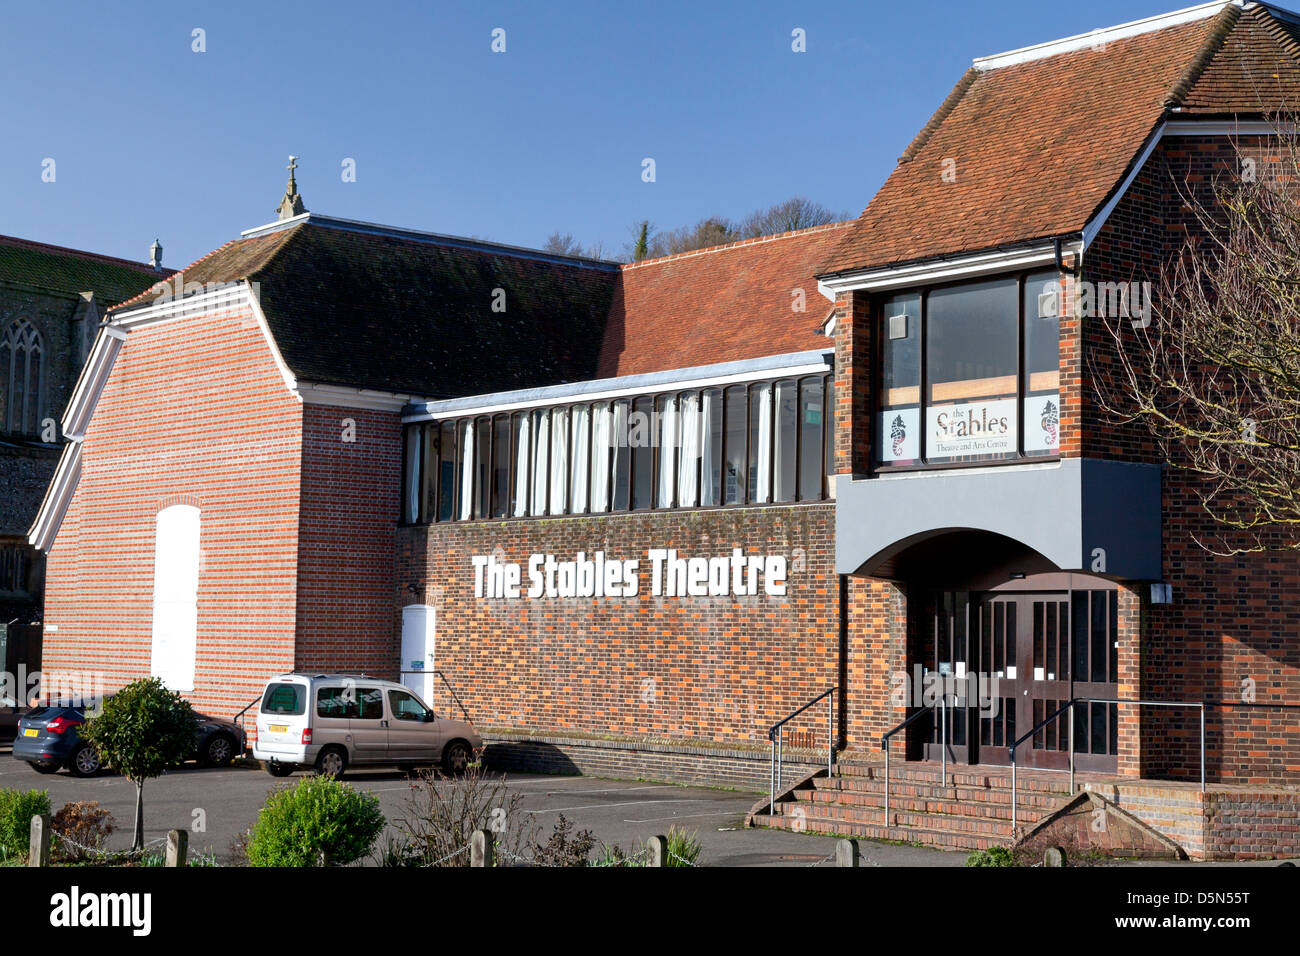 The Stables Theatre, Hastings, East Sussex - Stock Image